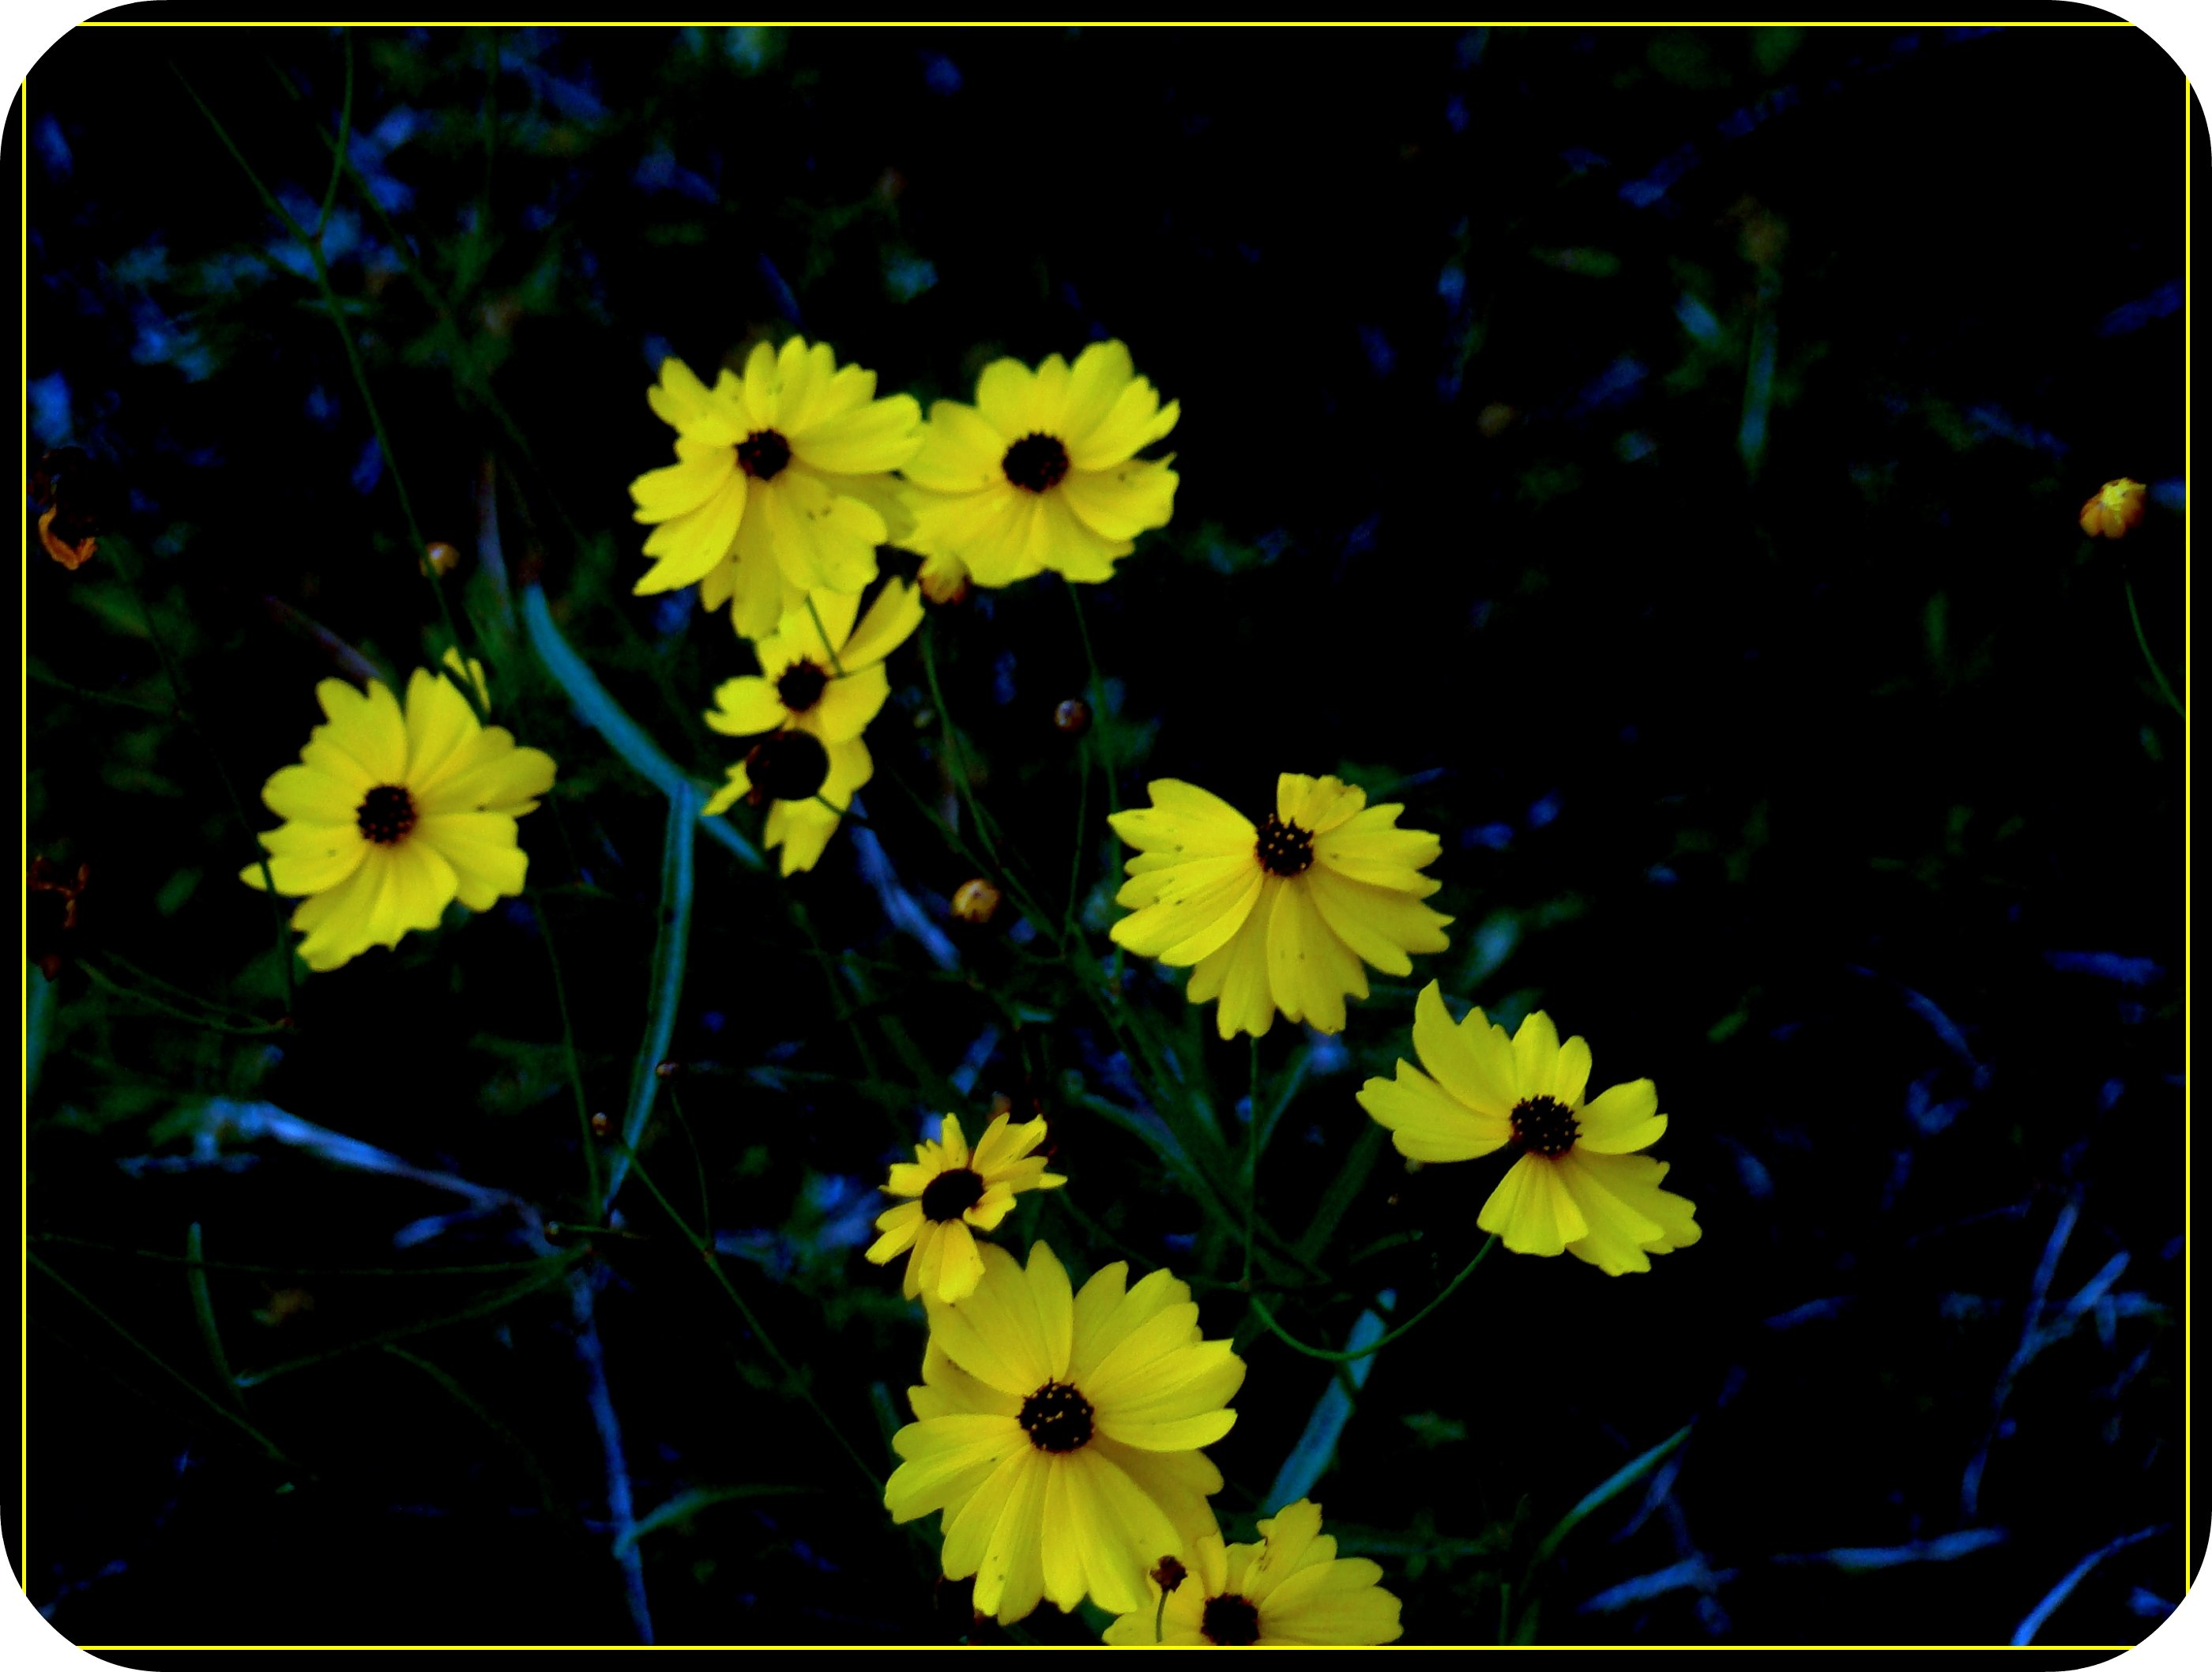 Florida state flower yellow makes me smile very abound…